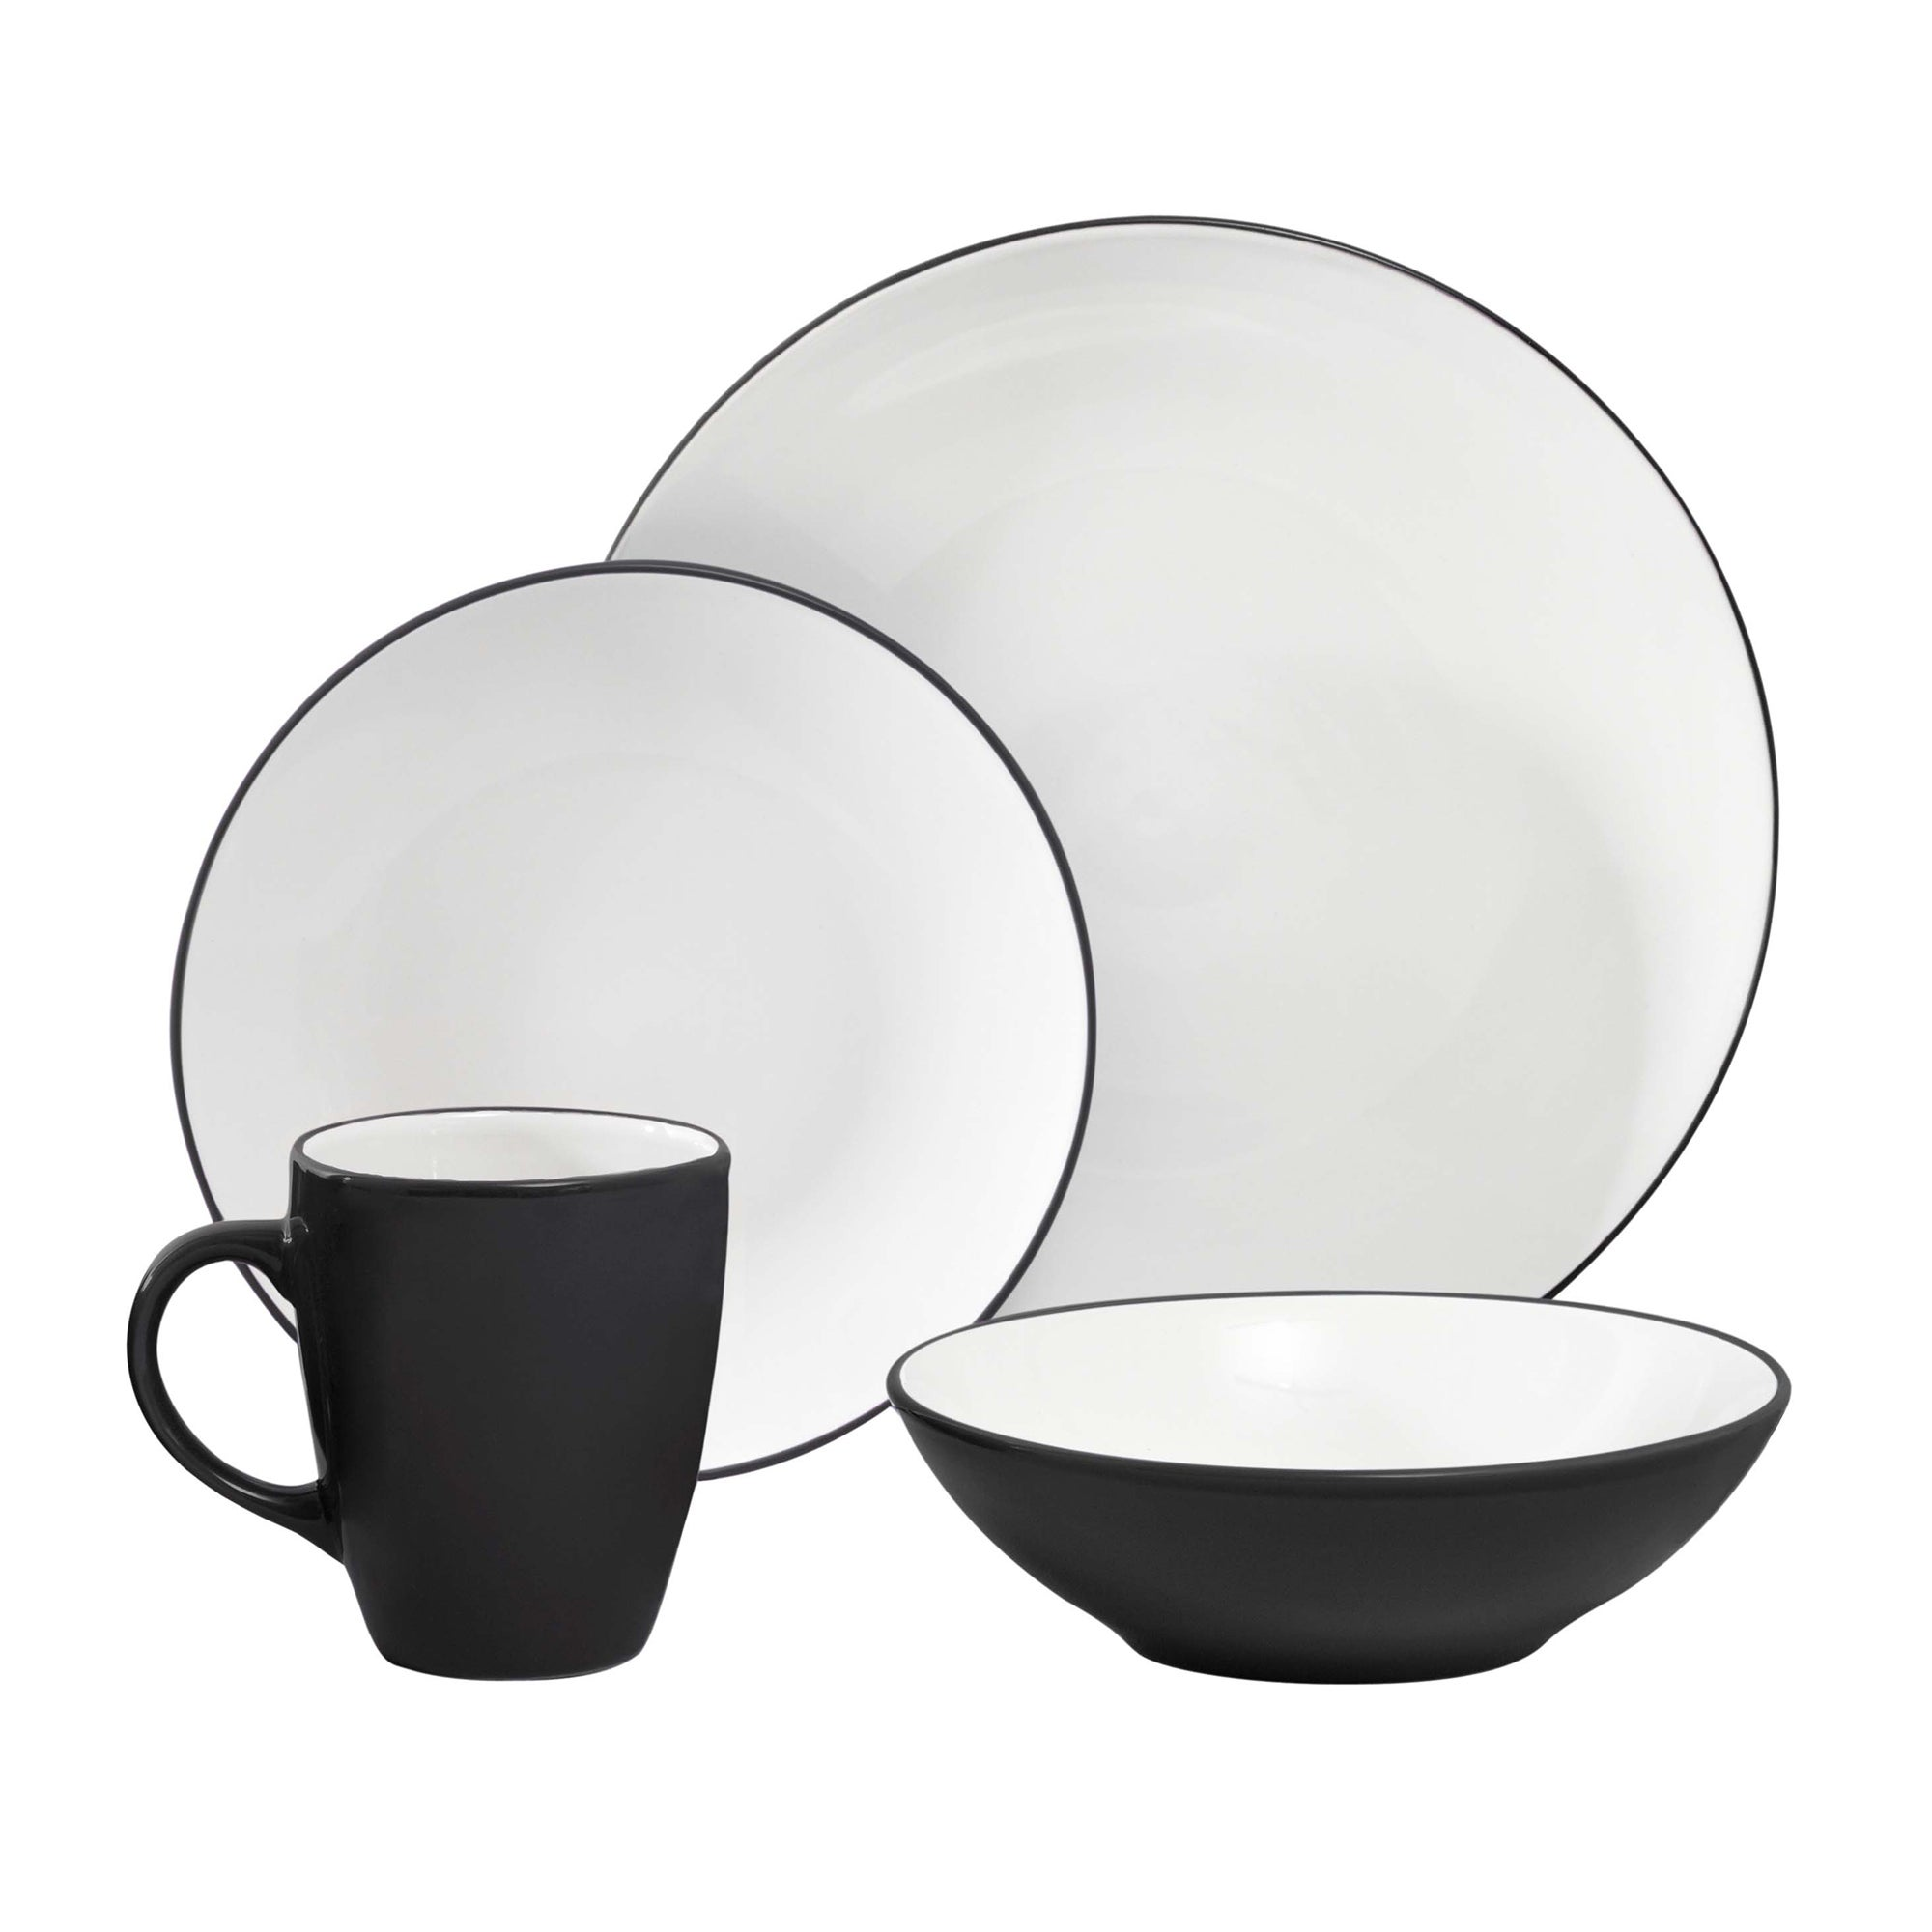 Image of Spectrum 16 Piece Black Dinner Set Black